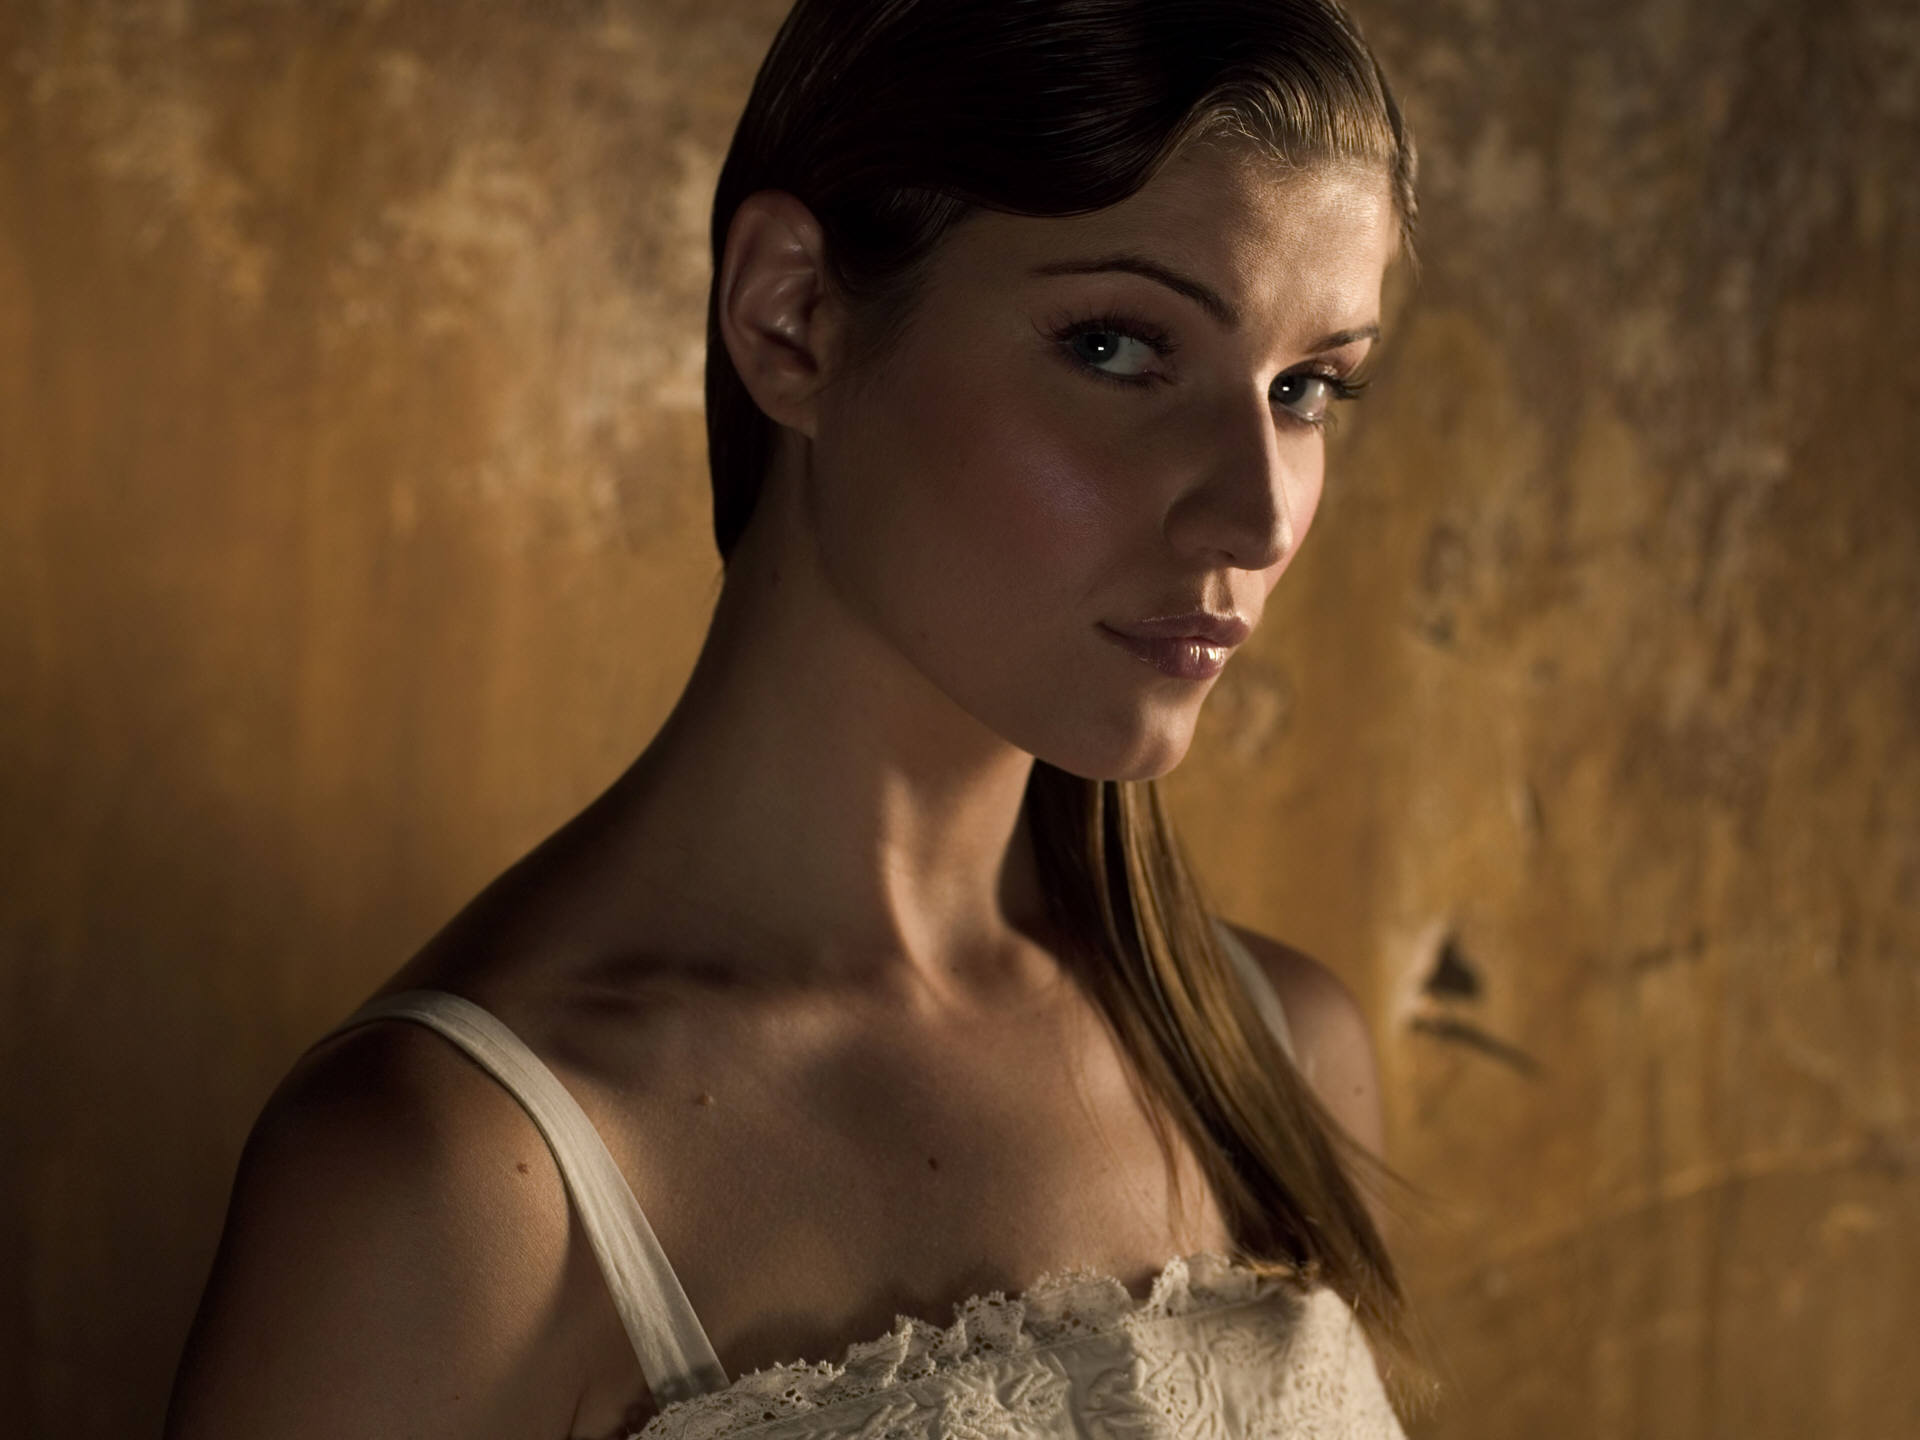 1920x1440 - Ivana Milicevic Wallpapers 10